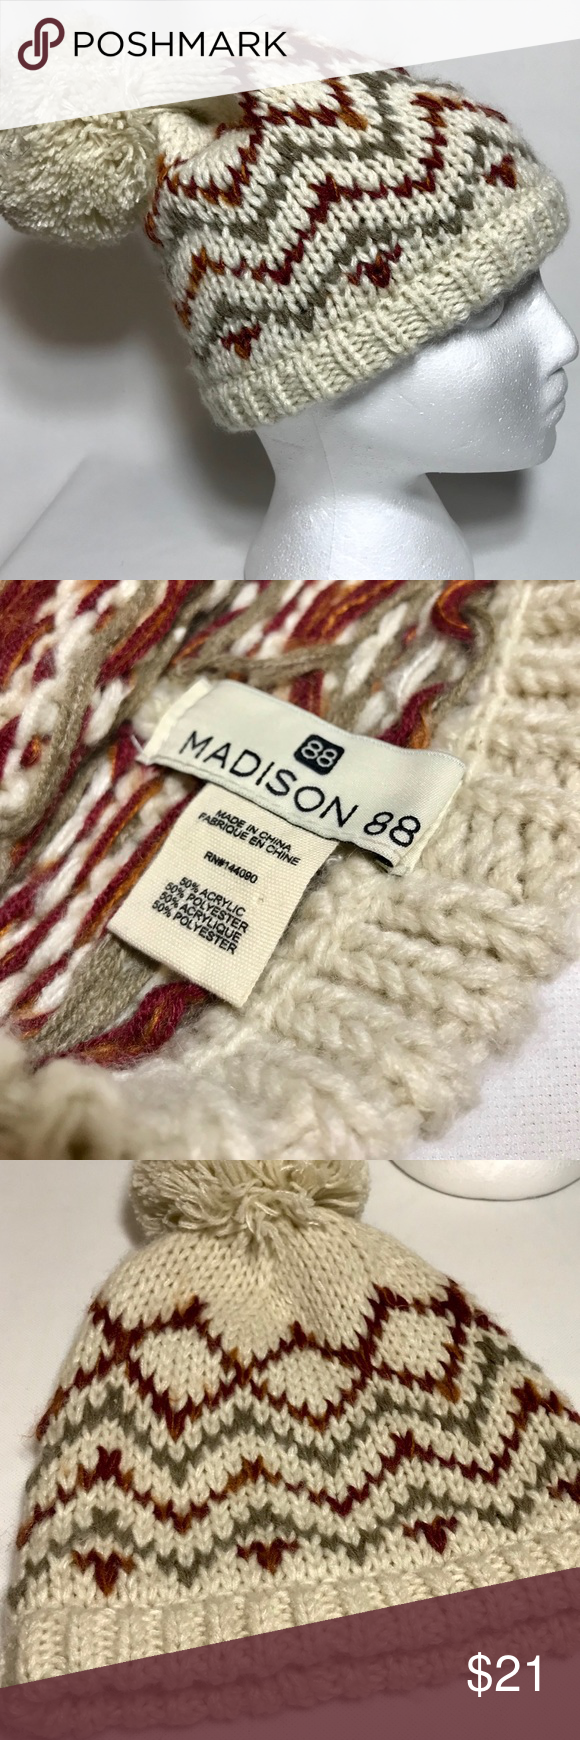 9079e51d39256 Madison 88 Women s Winter Beanie Hat Madison 88 Women s Beanie topped with  Pom Accent Zigzag print